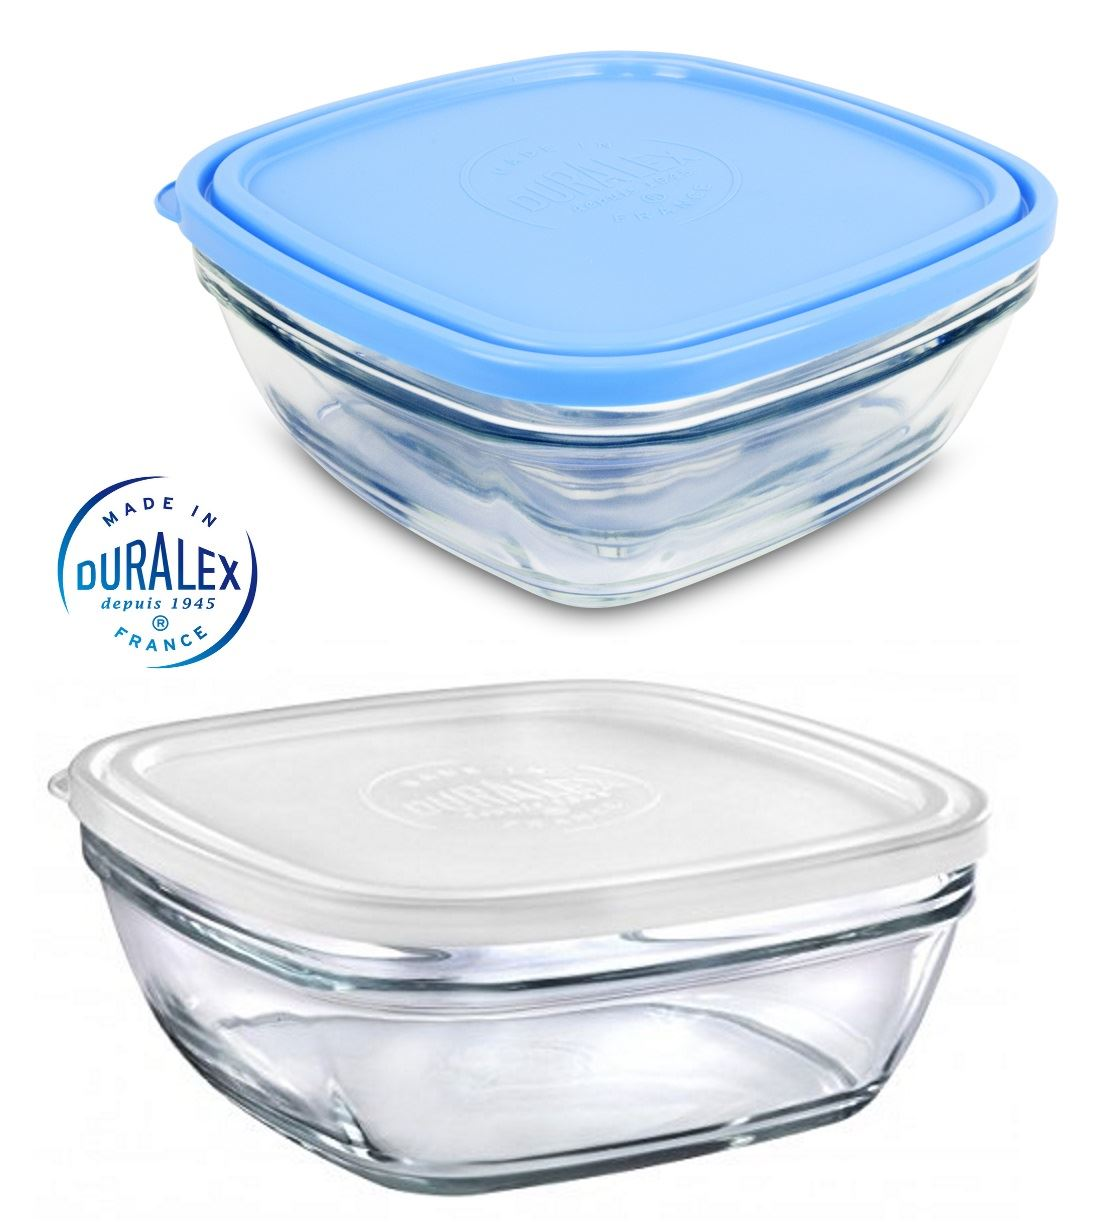 duralex french toughened glass food storage containers. Black Bedroom Furniture Sets. Home Design Ideas